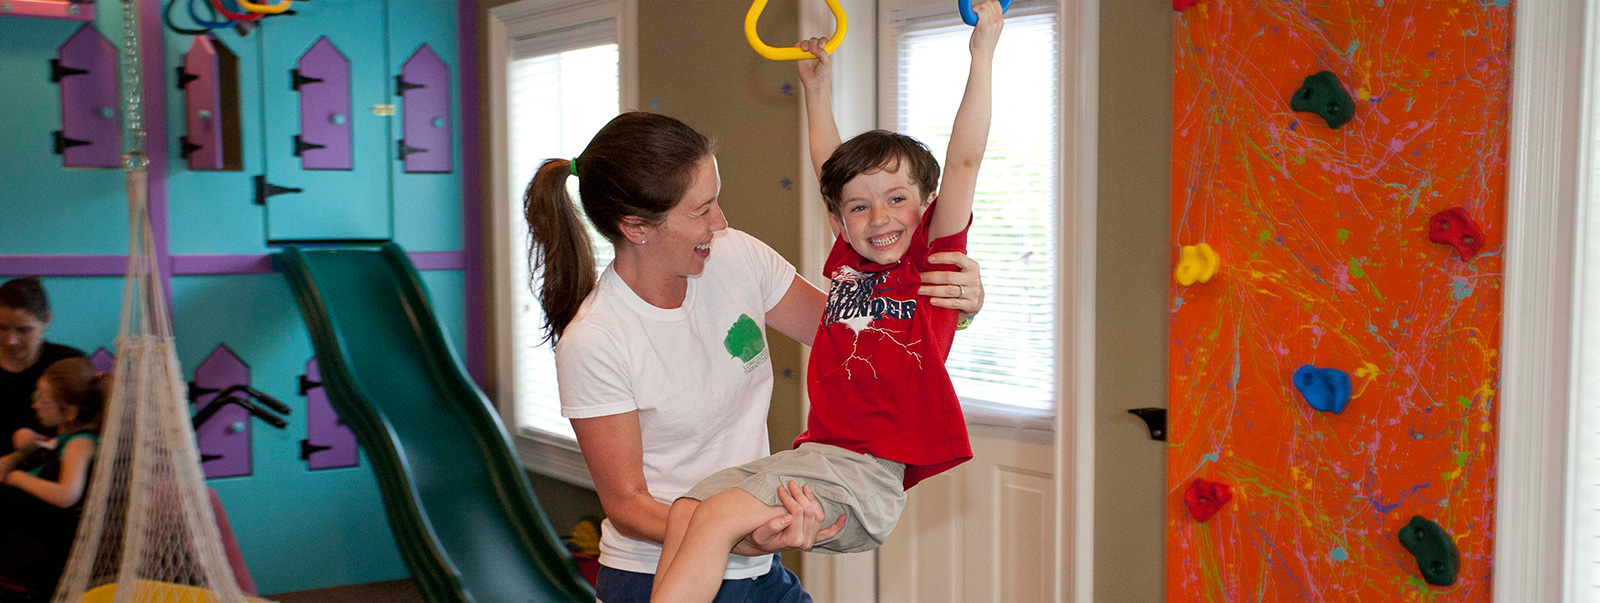 A career in pediatric physical therapy - Contact Us Today To Learn How Our Dedicated Team Of Quality Professionals Can Help You